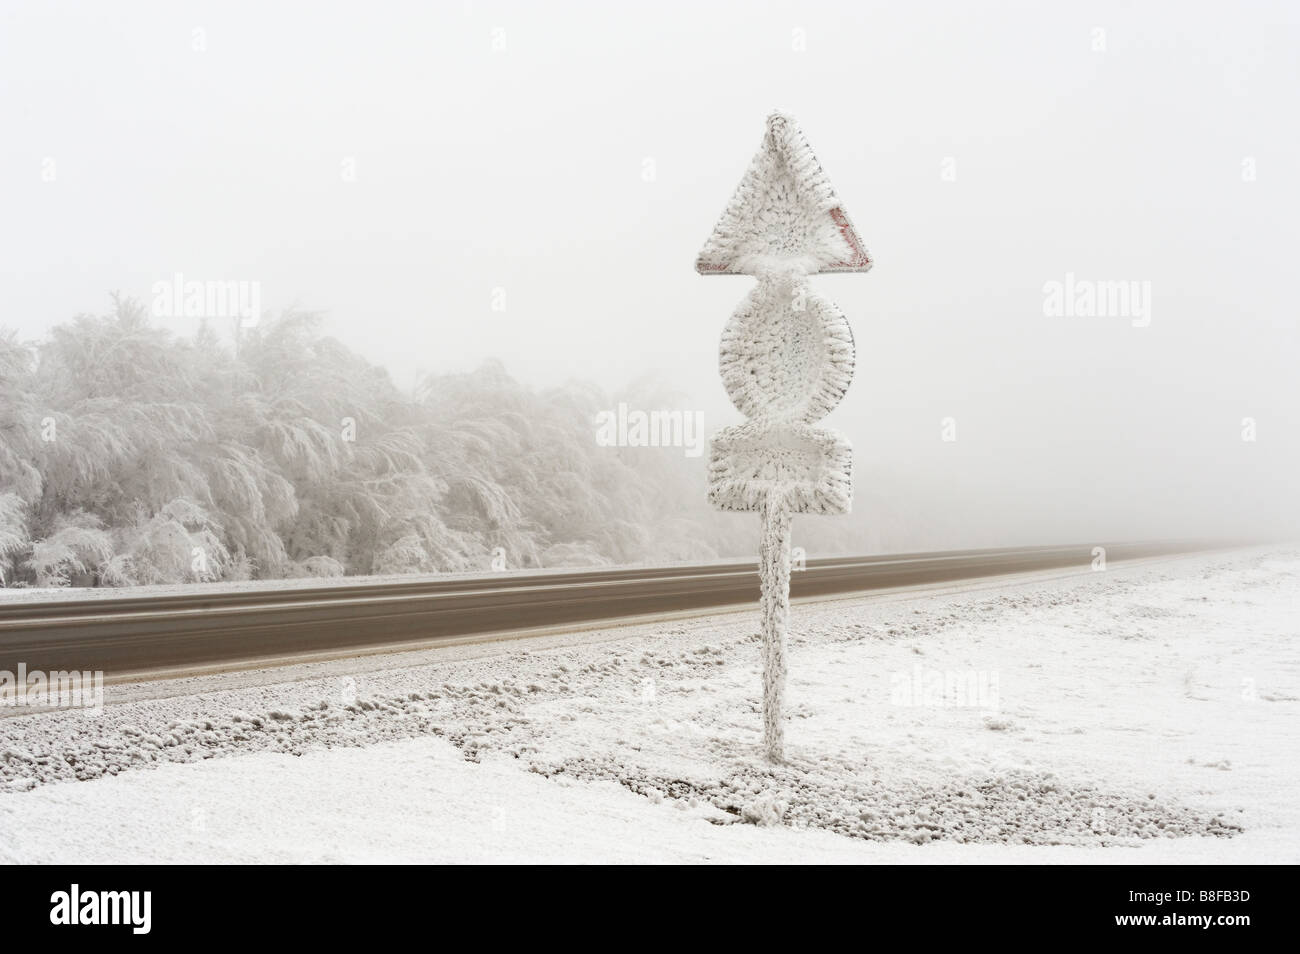 Winter road with hoar-frosted road signs. - Stock Image